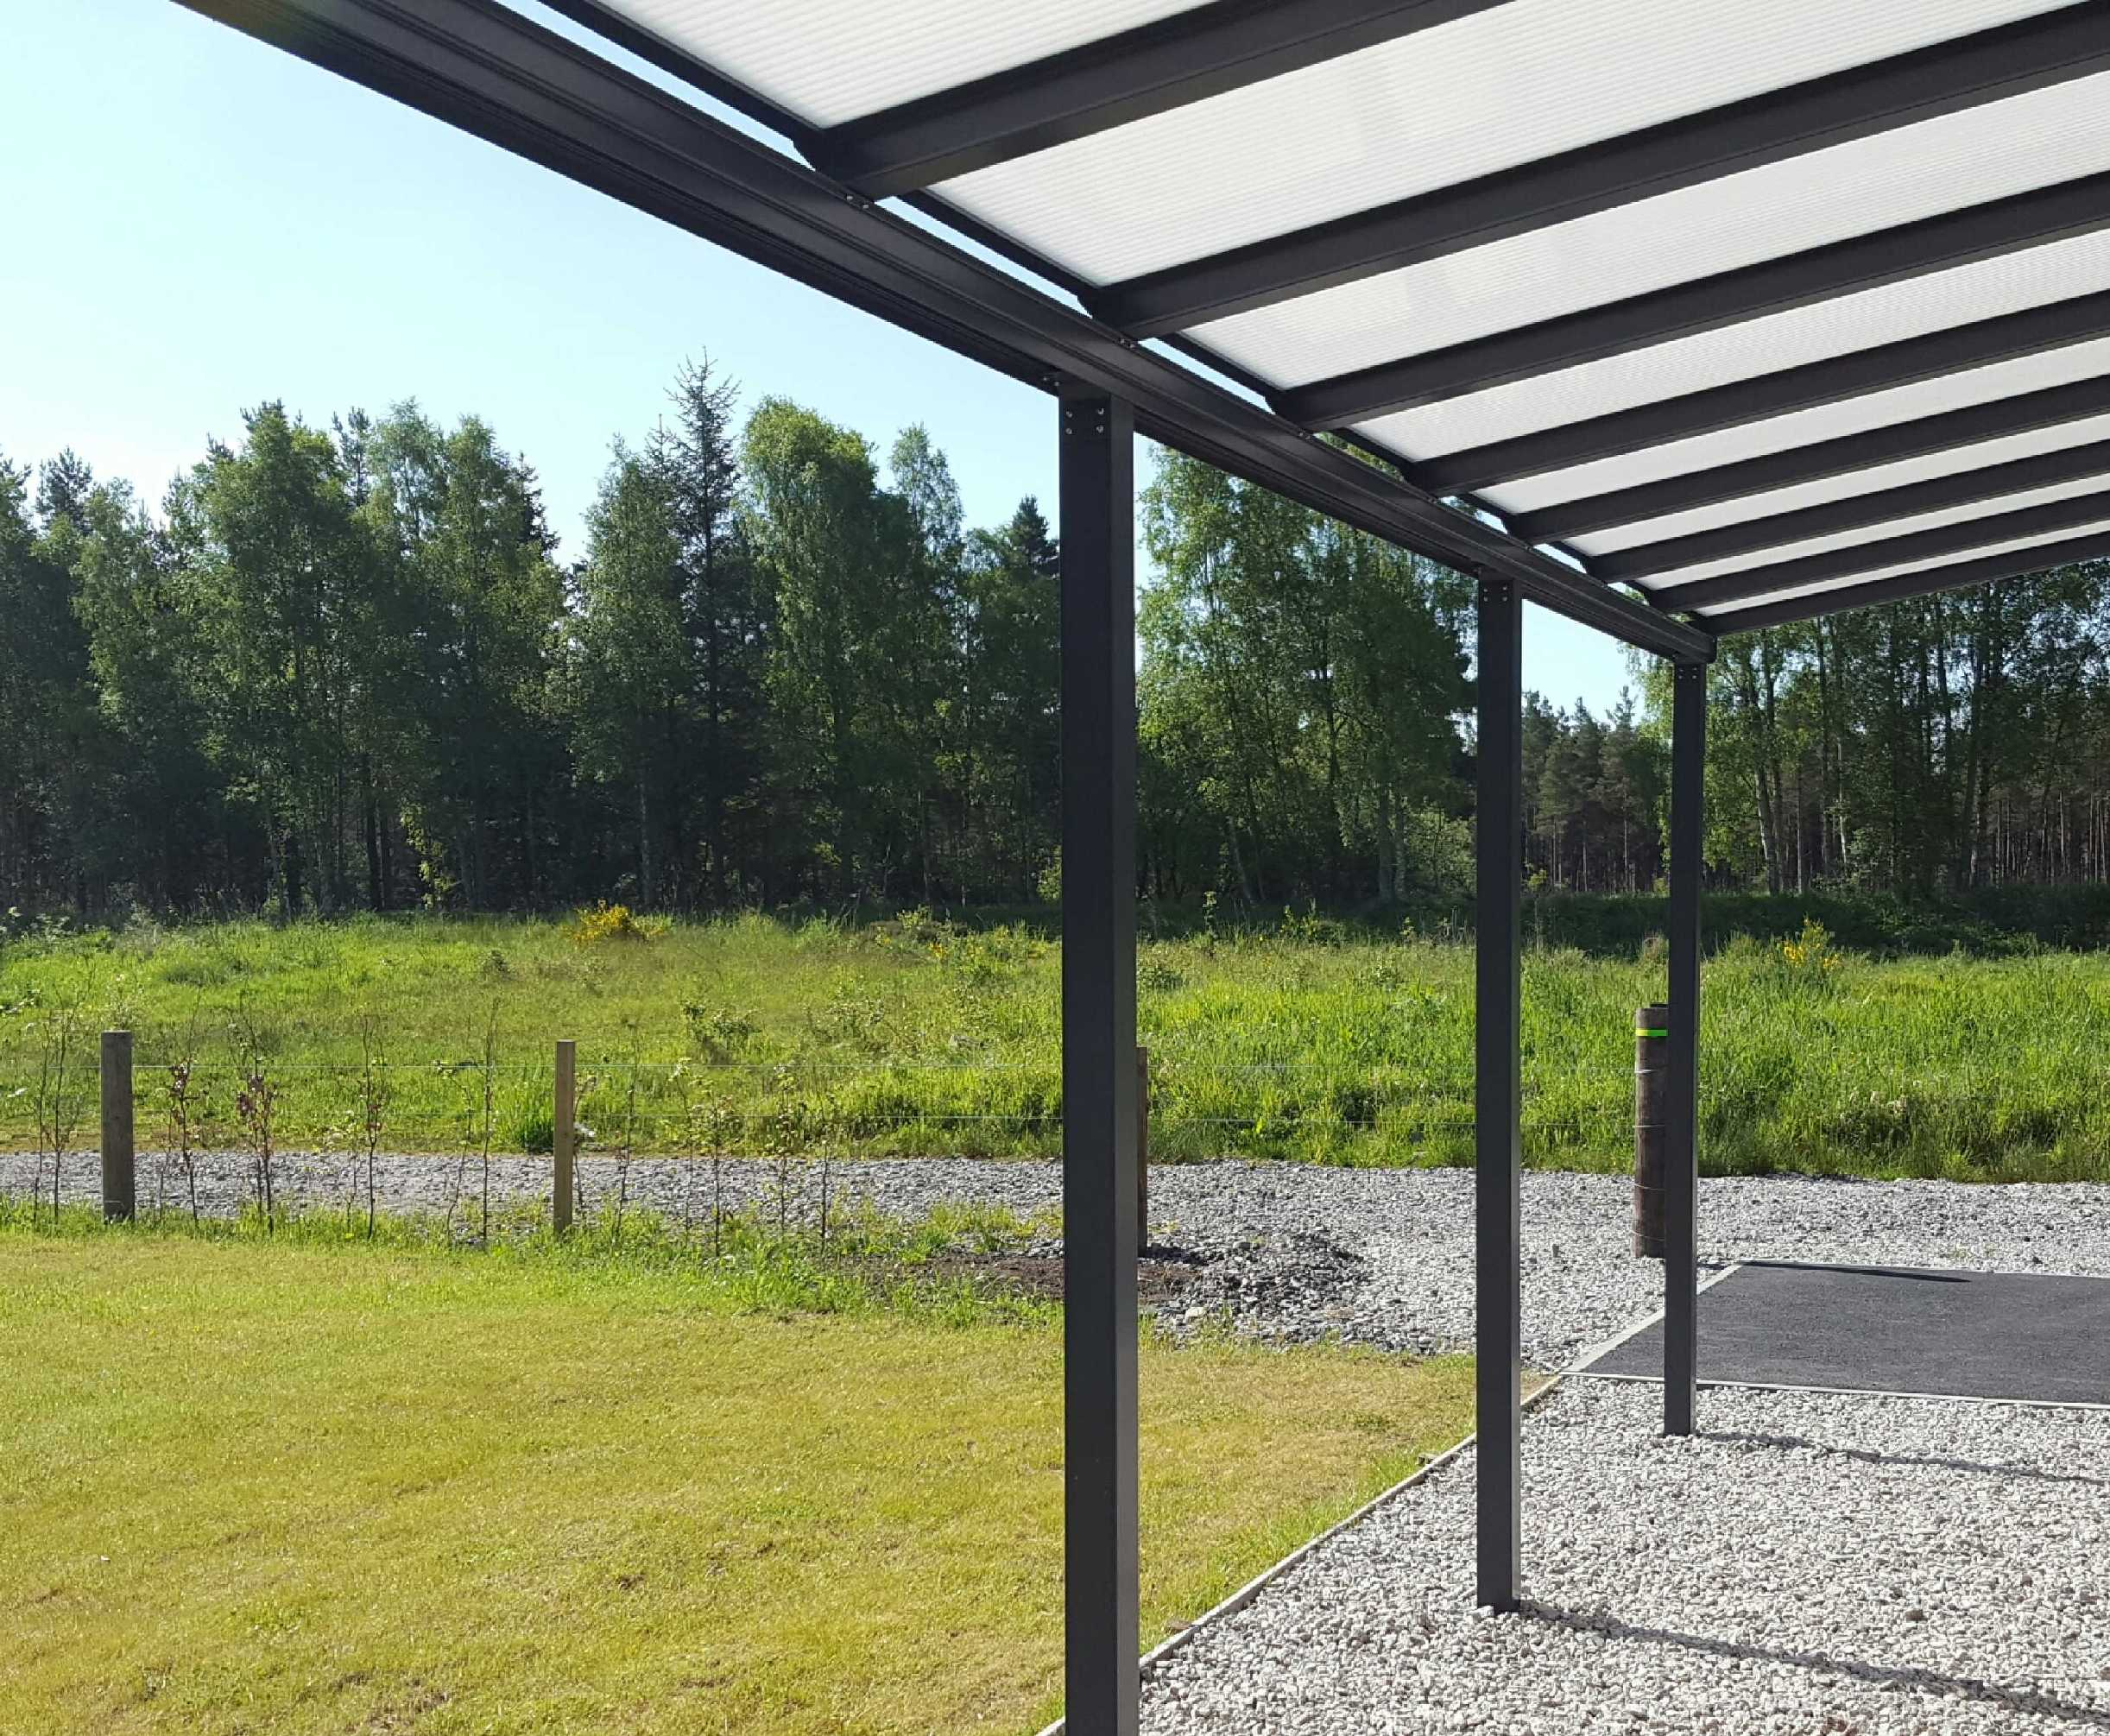 Omega Smart Lean-To Canopy, Anthracite Grey, UNGLAZED for 6mm Glazing - 3.5m (W) x 2.0m (P), (3) Supporting Posts